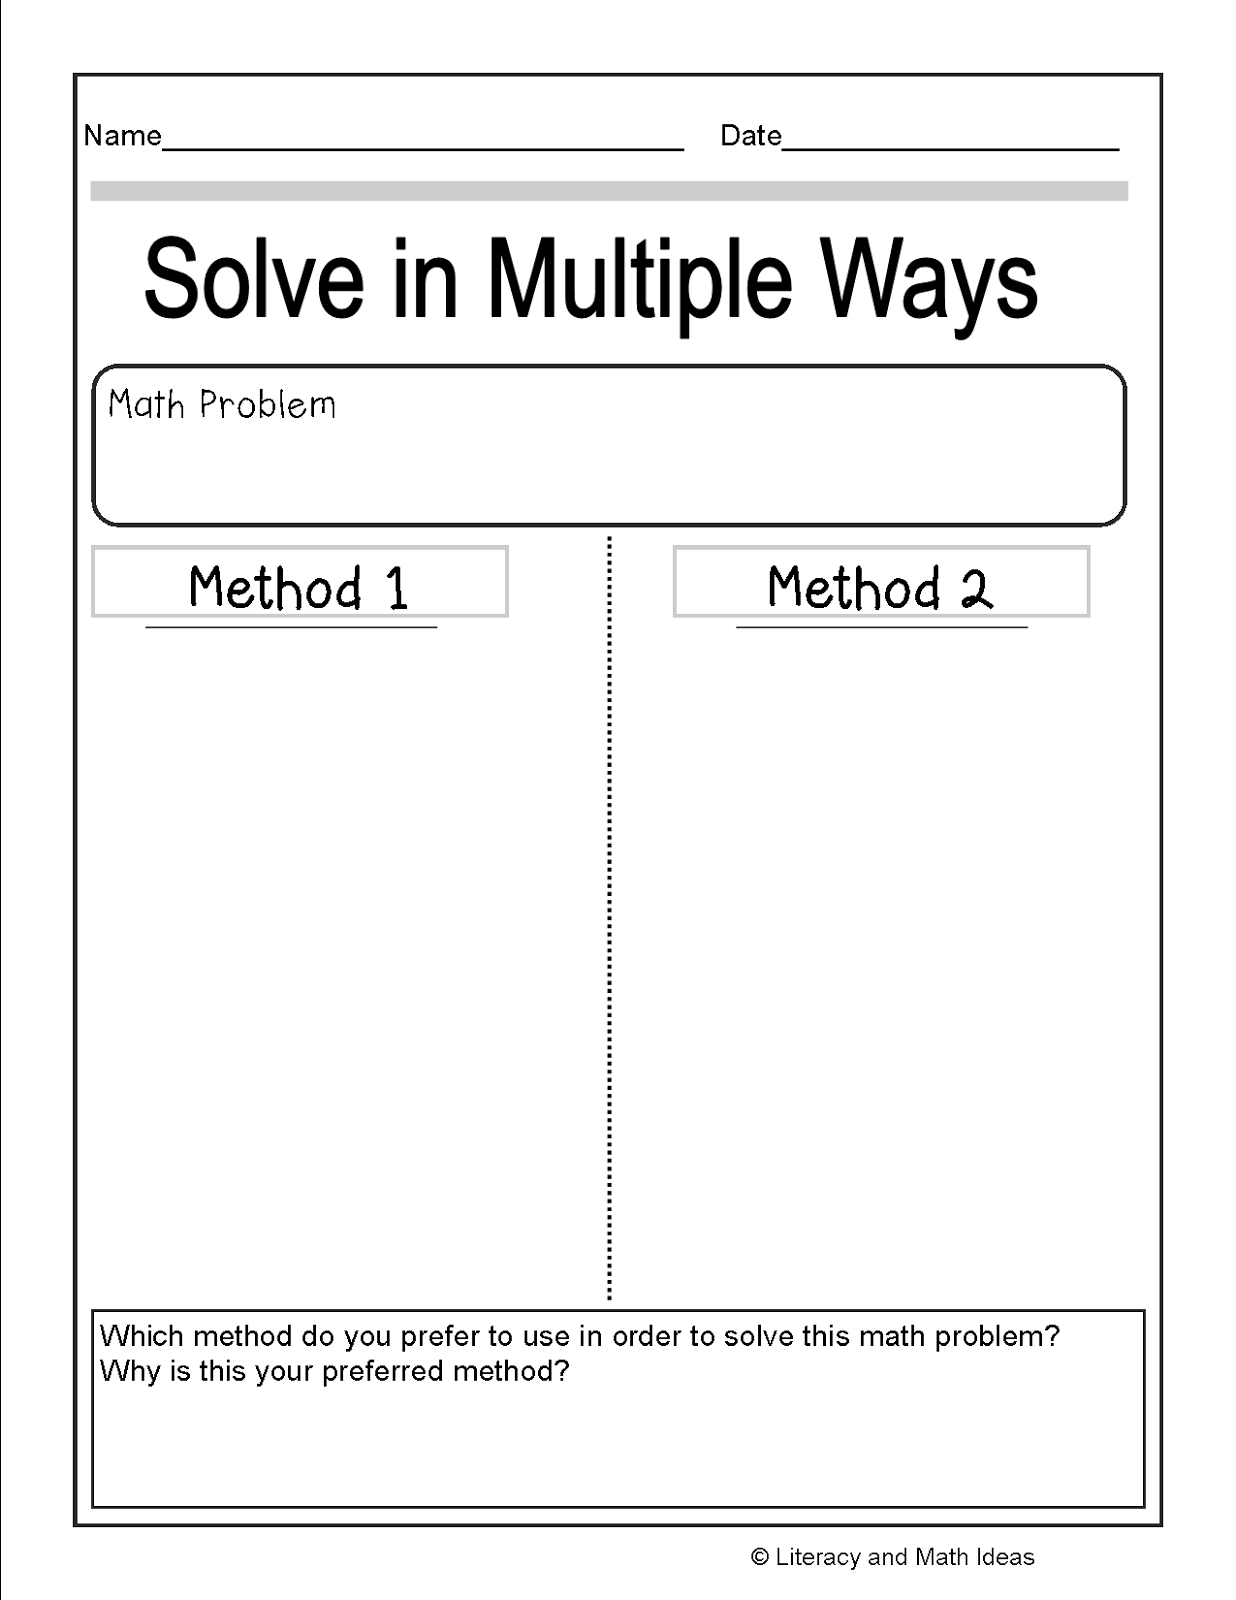 Free Template Solve Math Problems In Multiple Ways